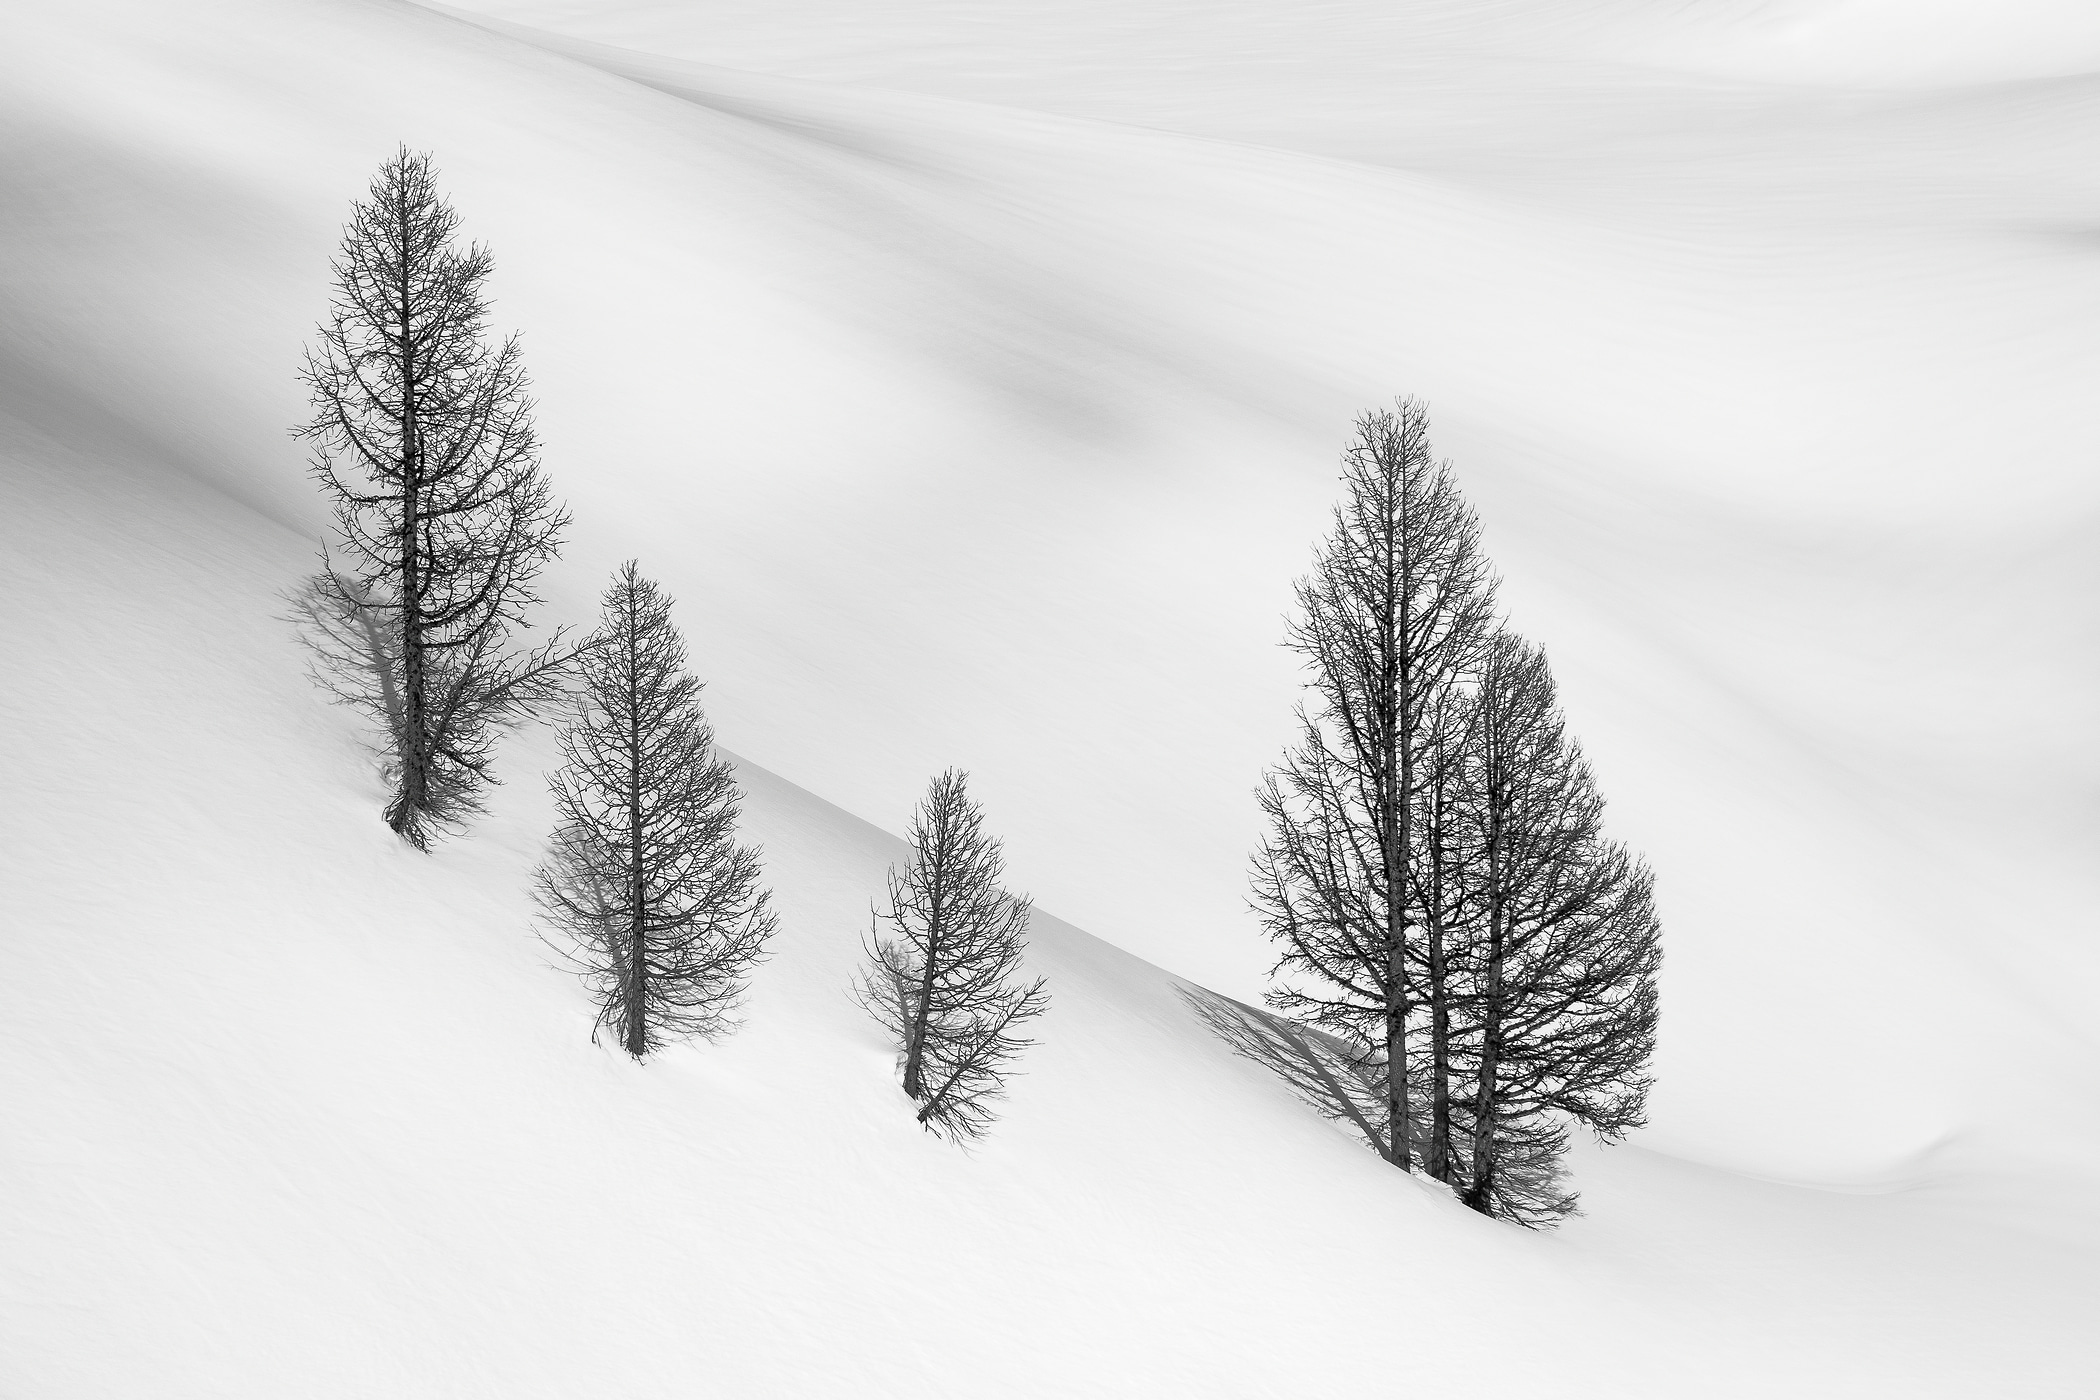 21 megapixels! A very high resolution, large-format VAST photo print of a grove of trees in the snow; black and white photograph created by Scott Rinckenberger in Bannock Mountain, Glacier Peak Wilderness, Washington